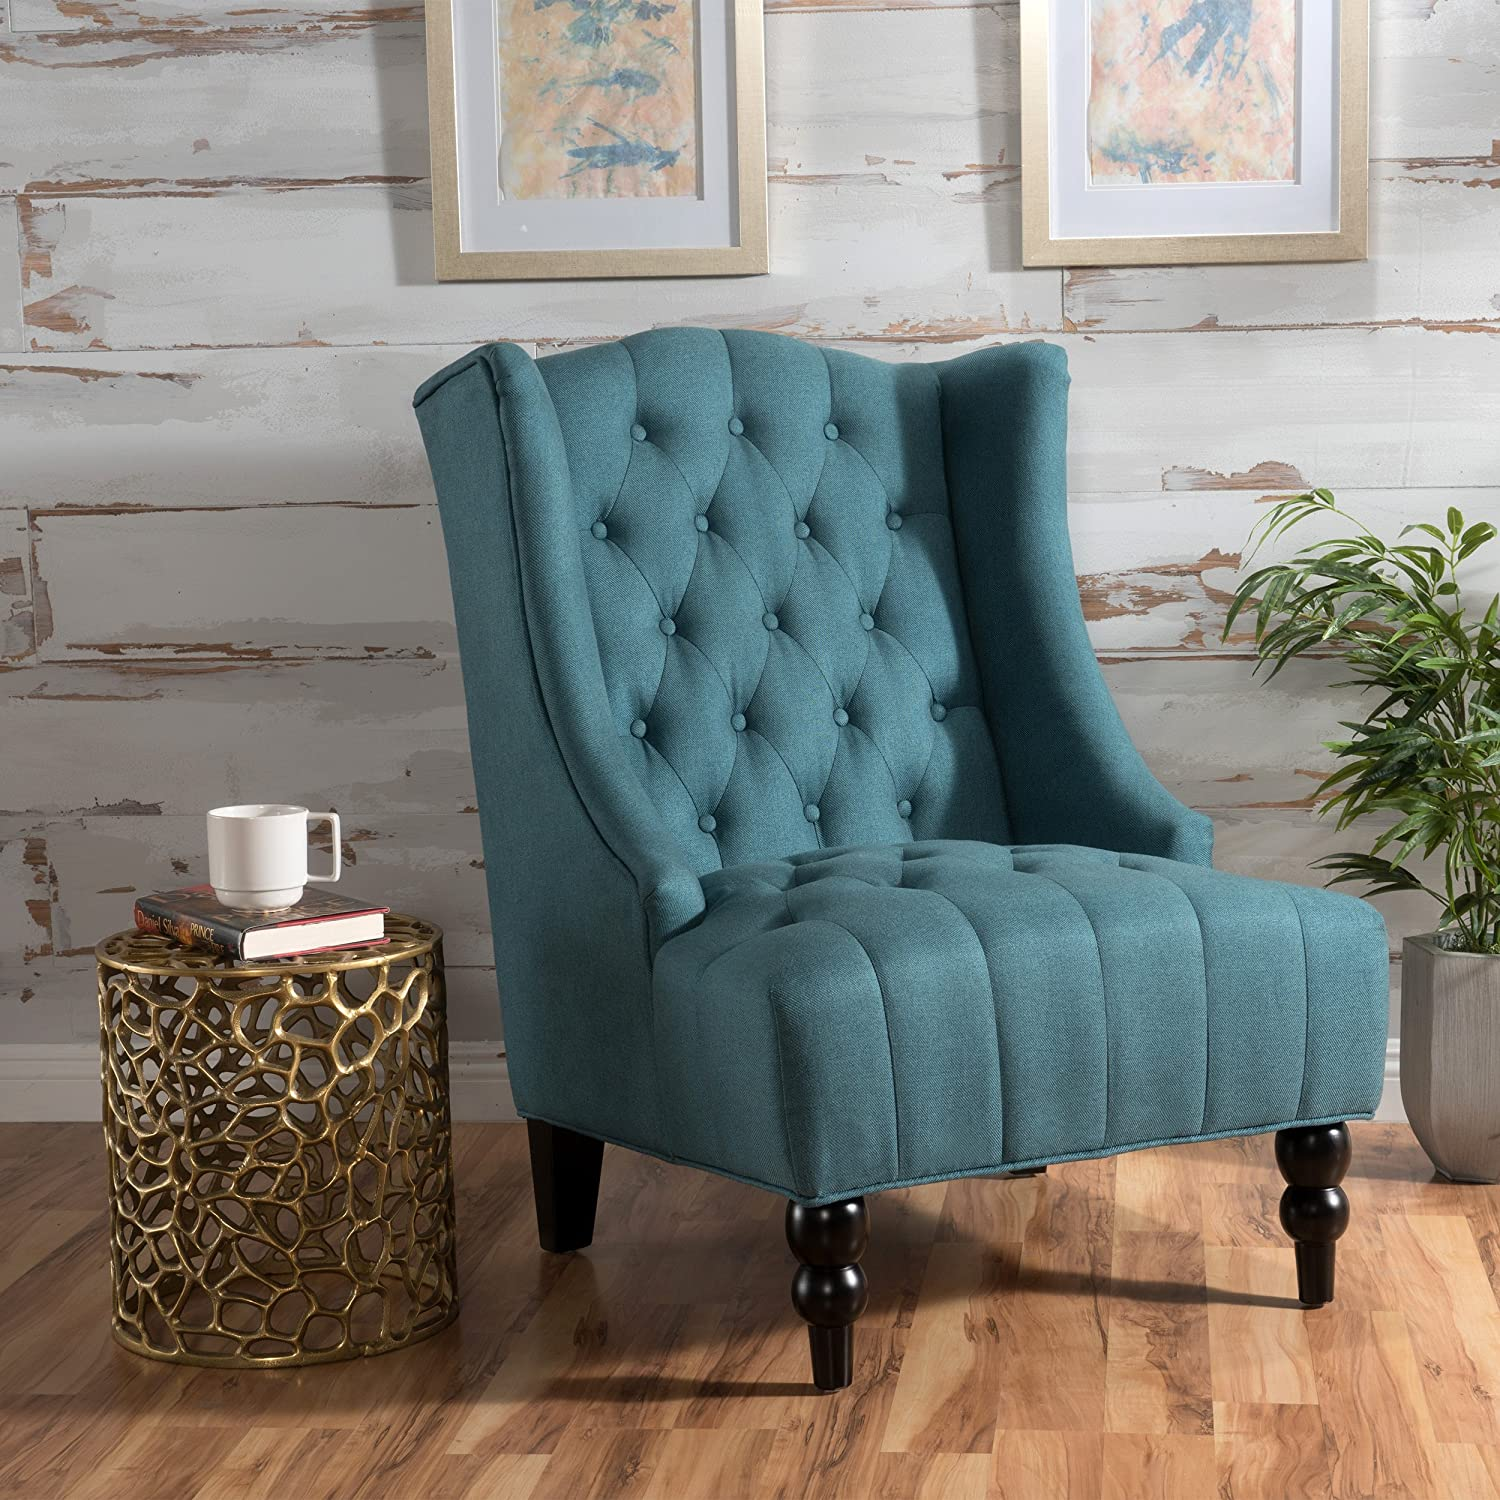 Amazon com clarice tall wingback tufted fabric accent chair vintage club seat for living room dark teal kitchen dining